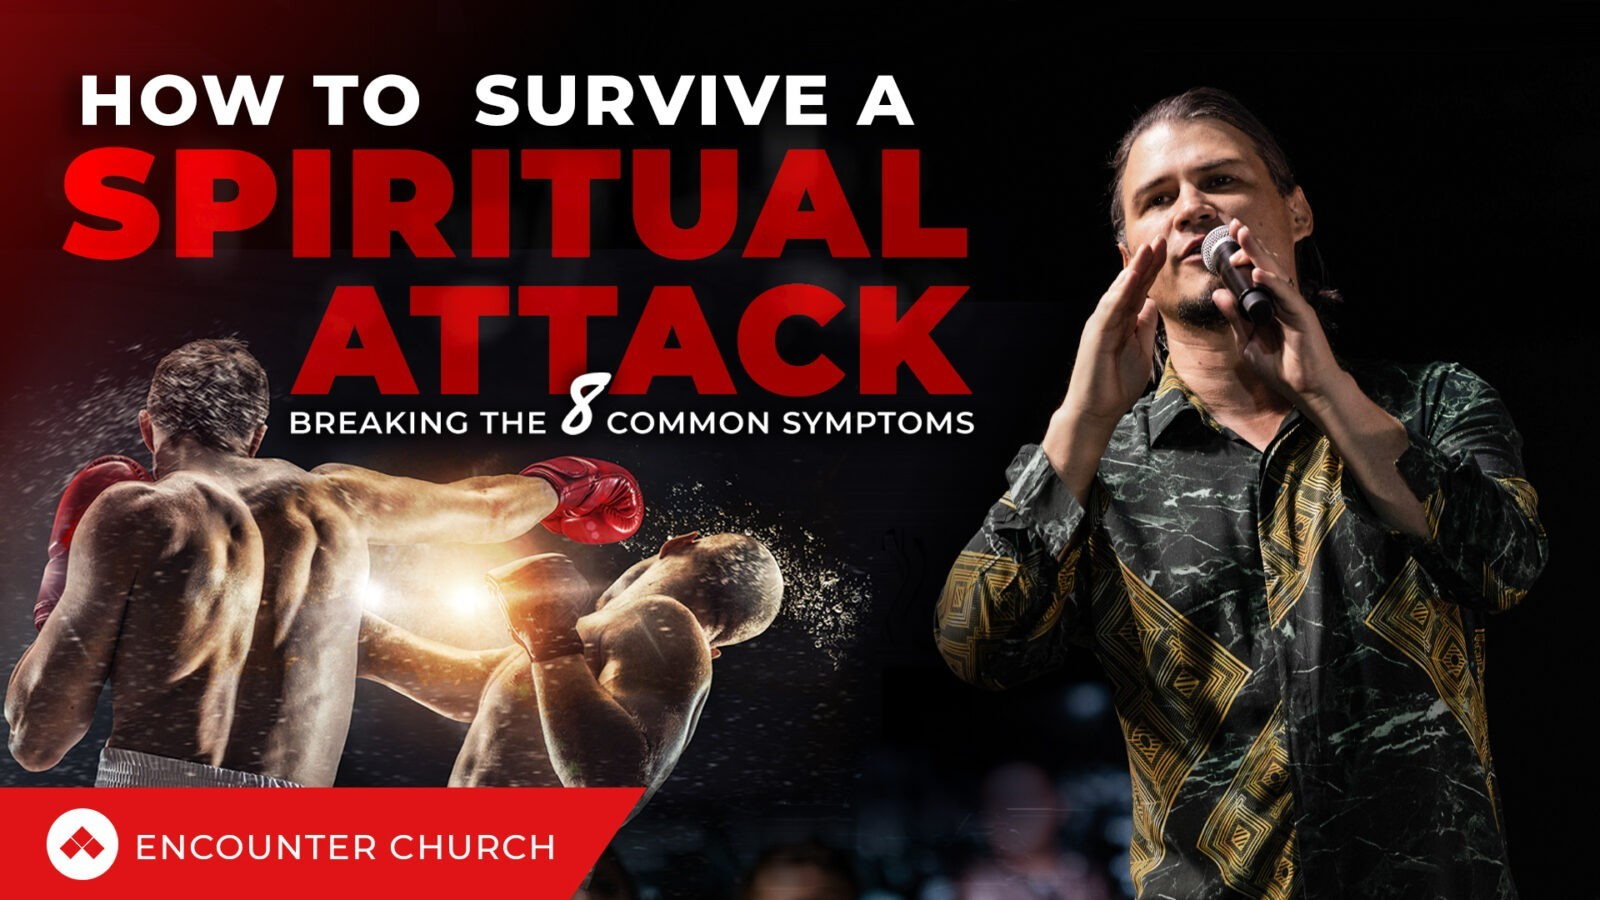 How to Survive a Spiritual Attack